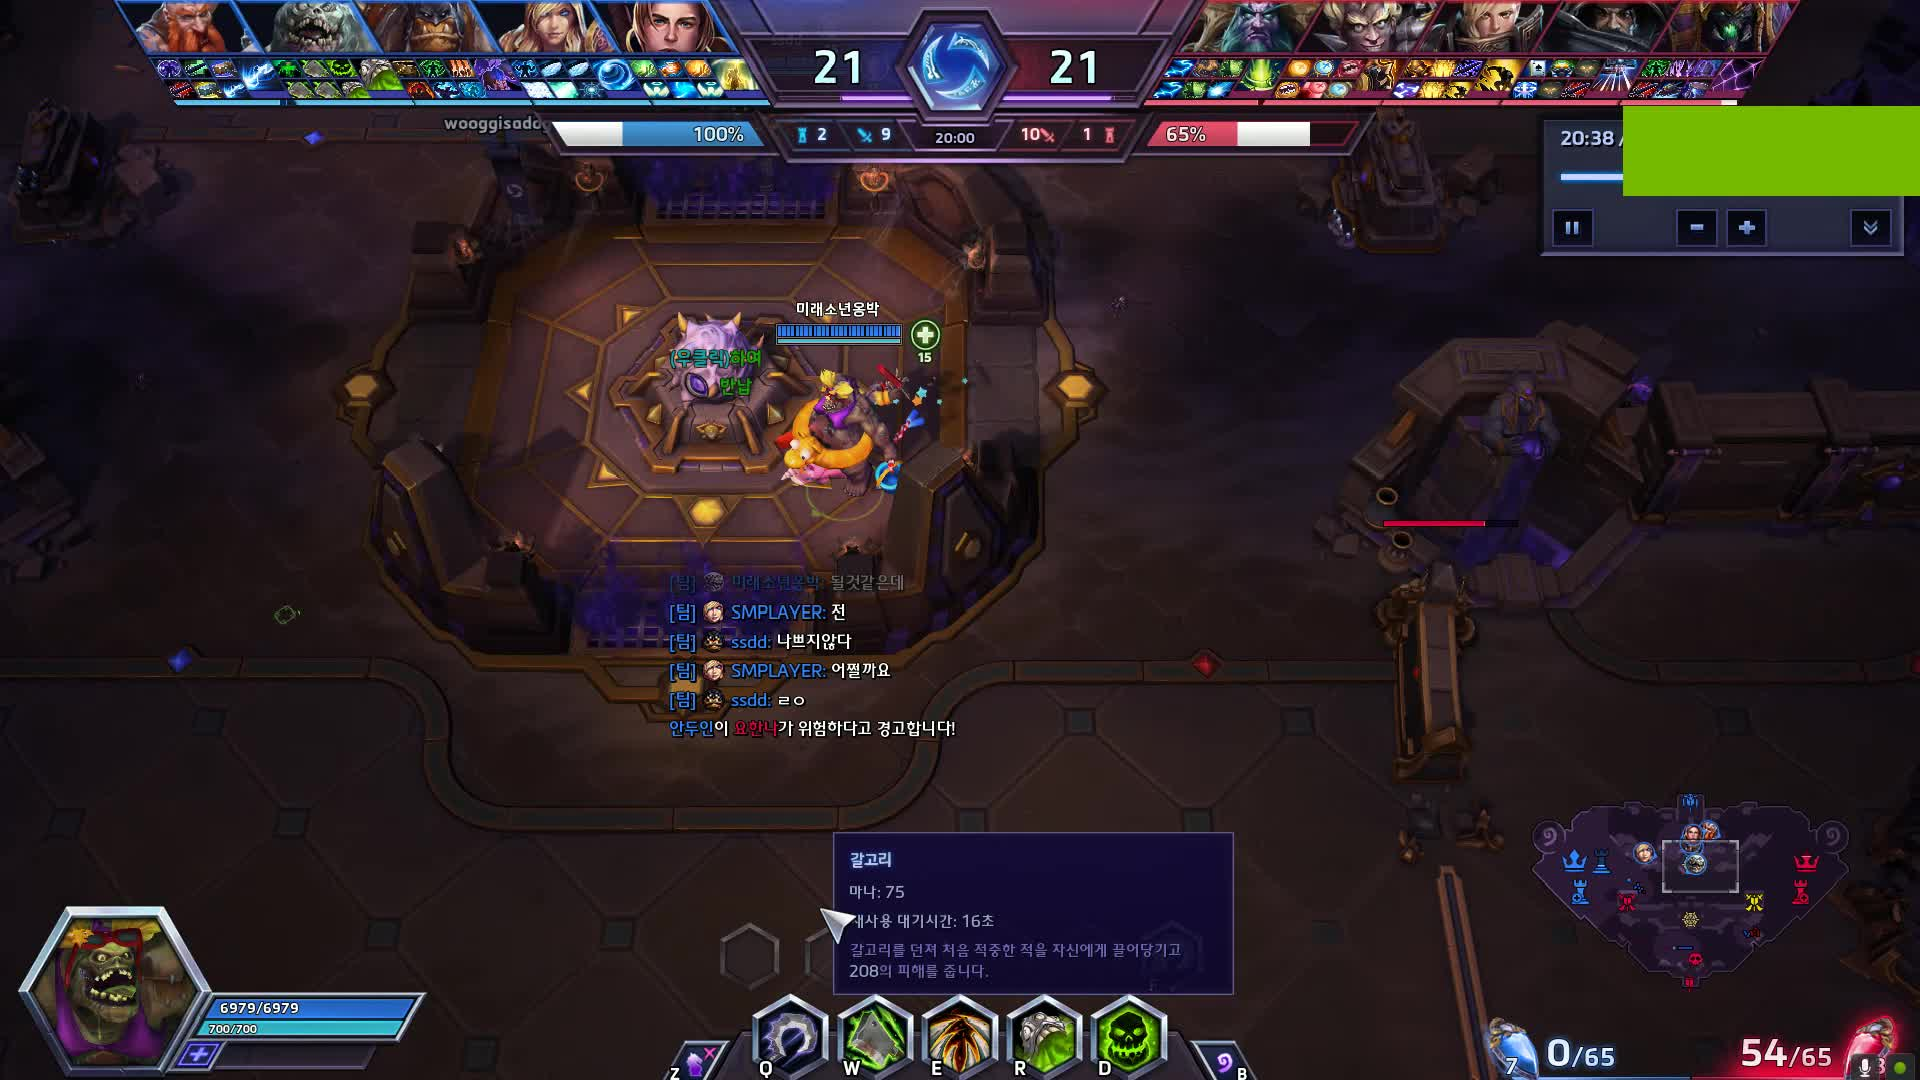 heroesofthestorm, Heroes of the Storm 2019.05.04 - 20.48.41.03 GIFs